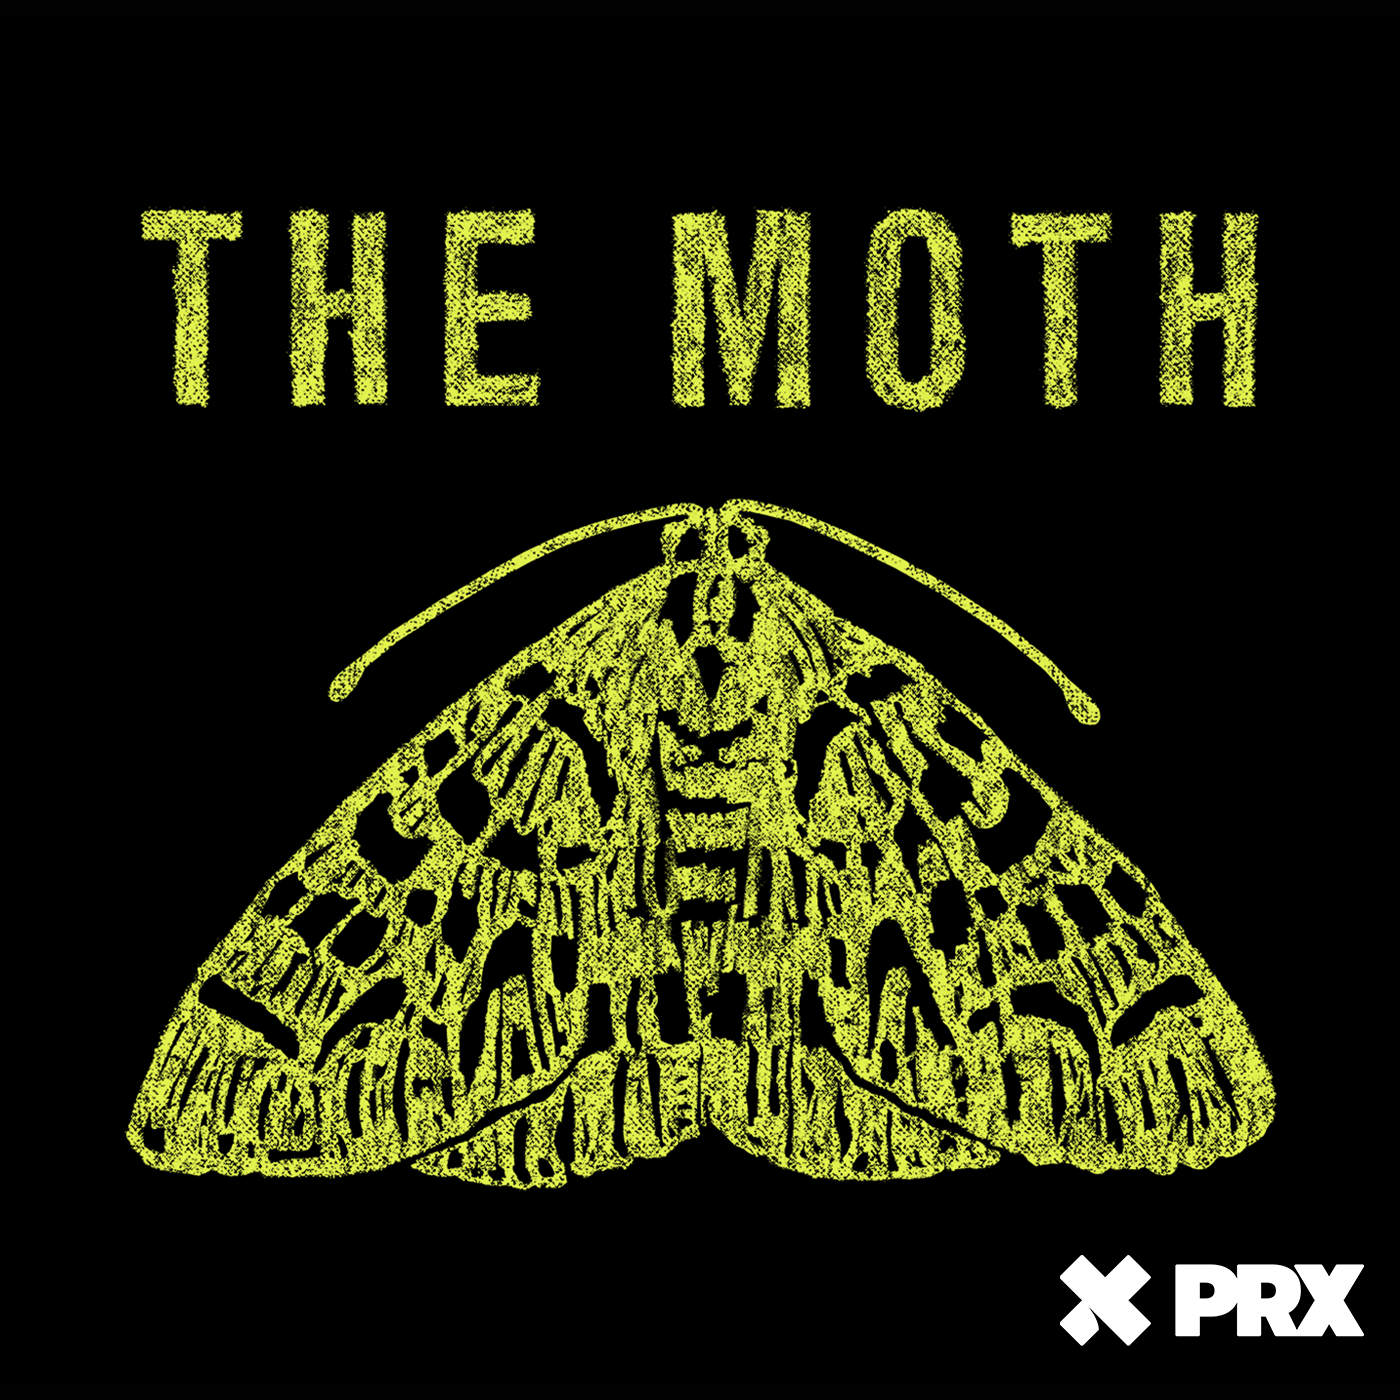 The Moth Radio Hour: Snow White and the Screaming Meemies